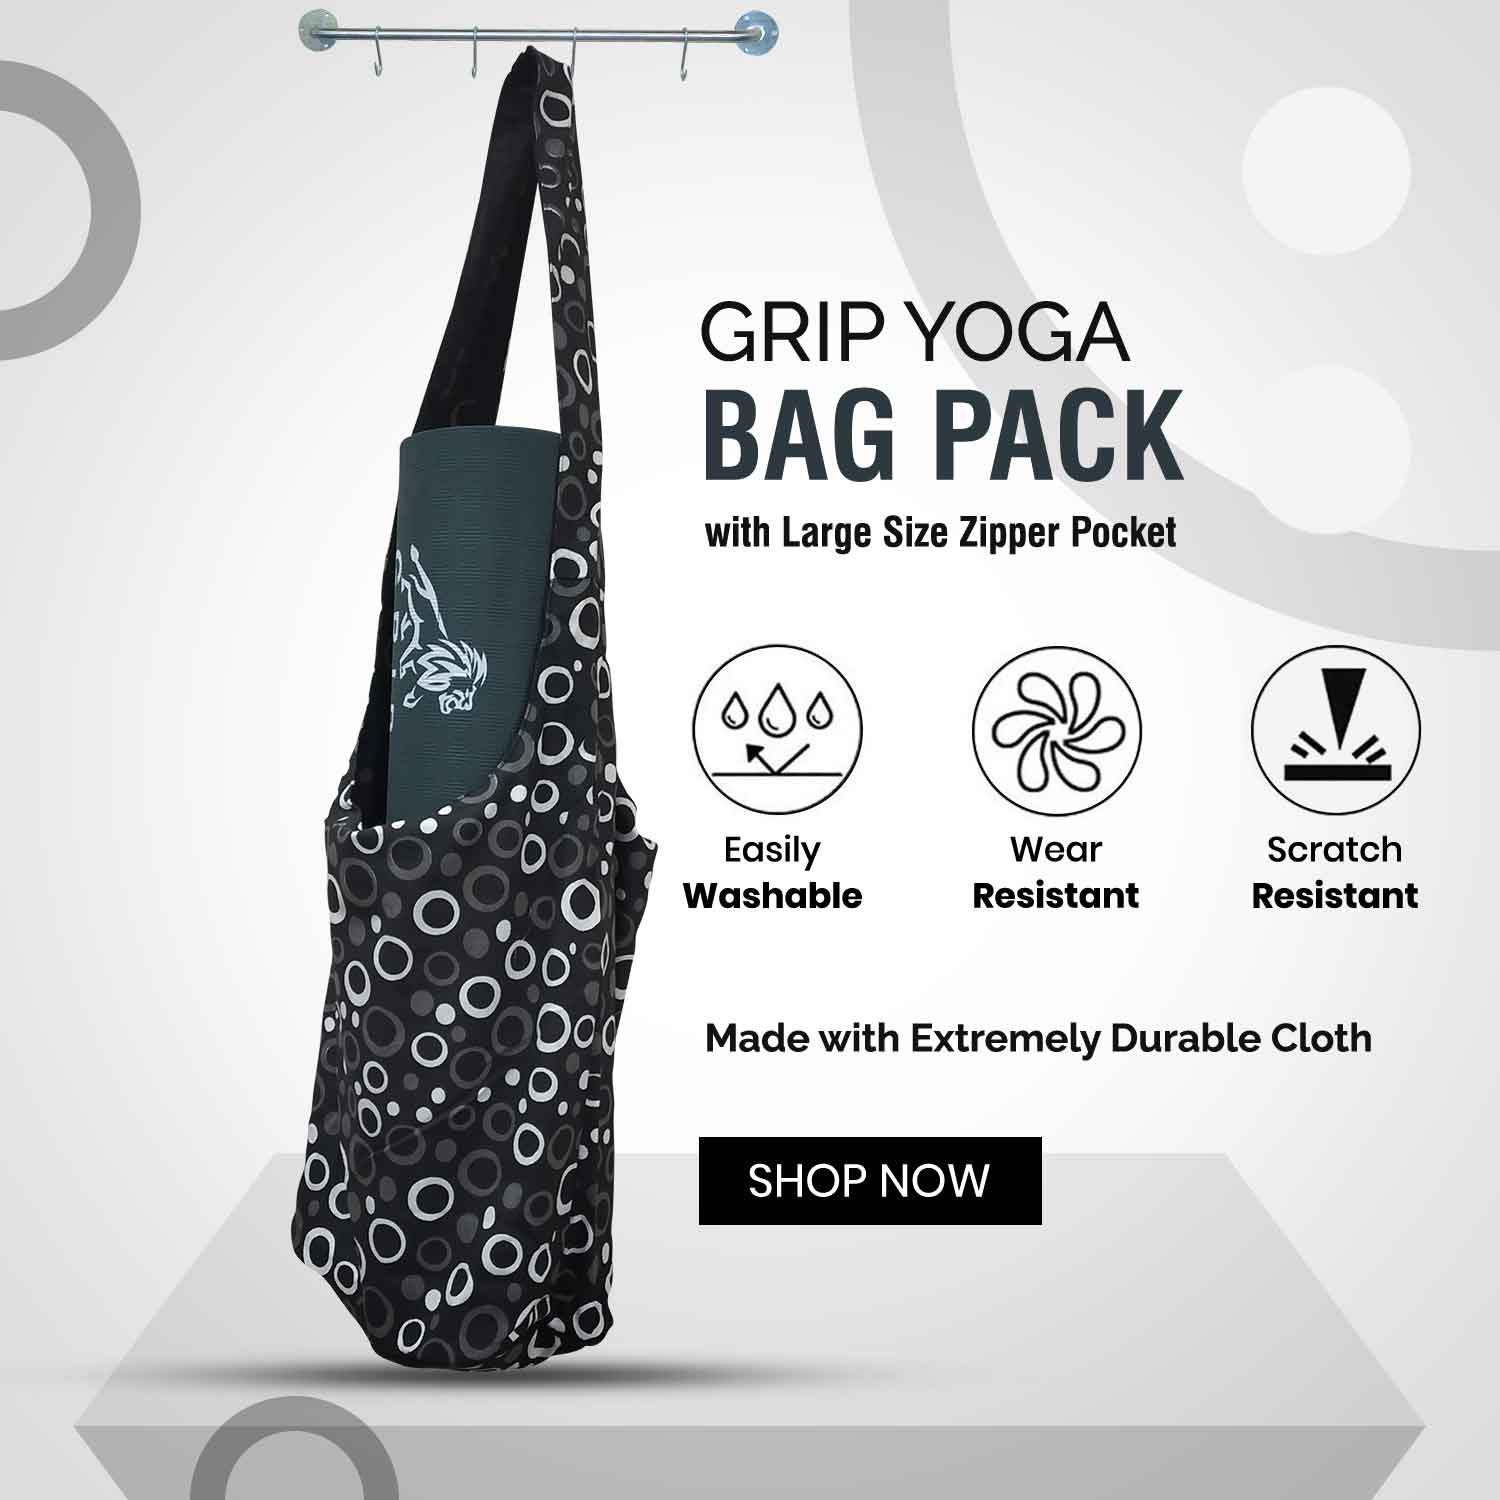 Grip Yoga Bagpack